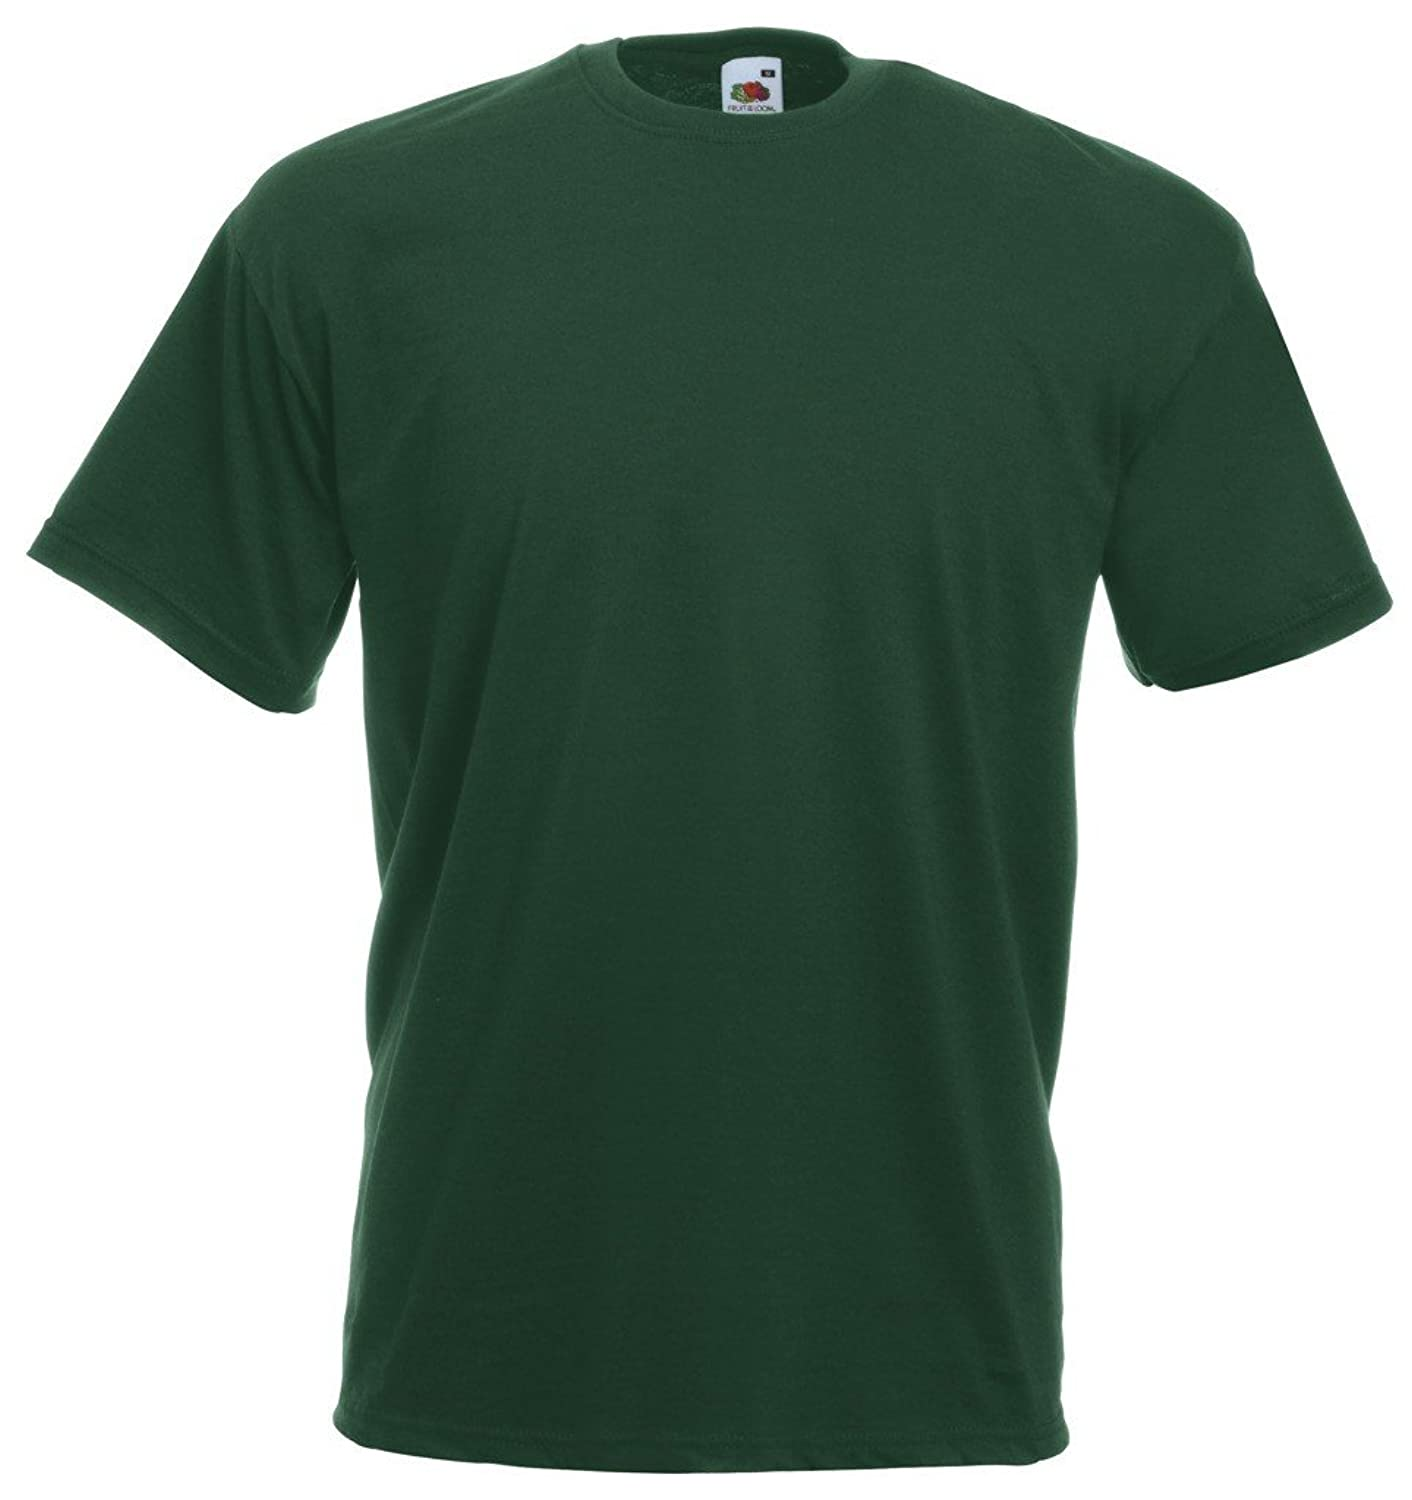 10 Fruit of the Loom T Shirt S-XXXL in Various Colours Green Flaschengr眉n Size:S